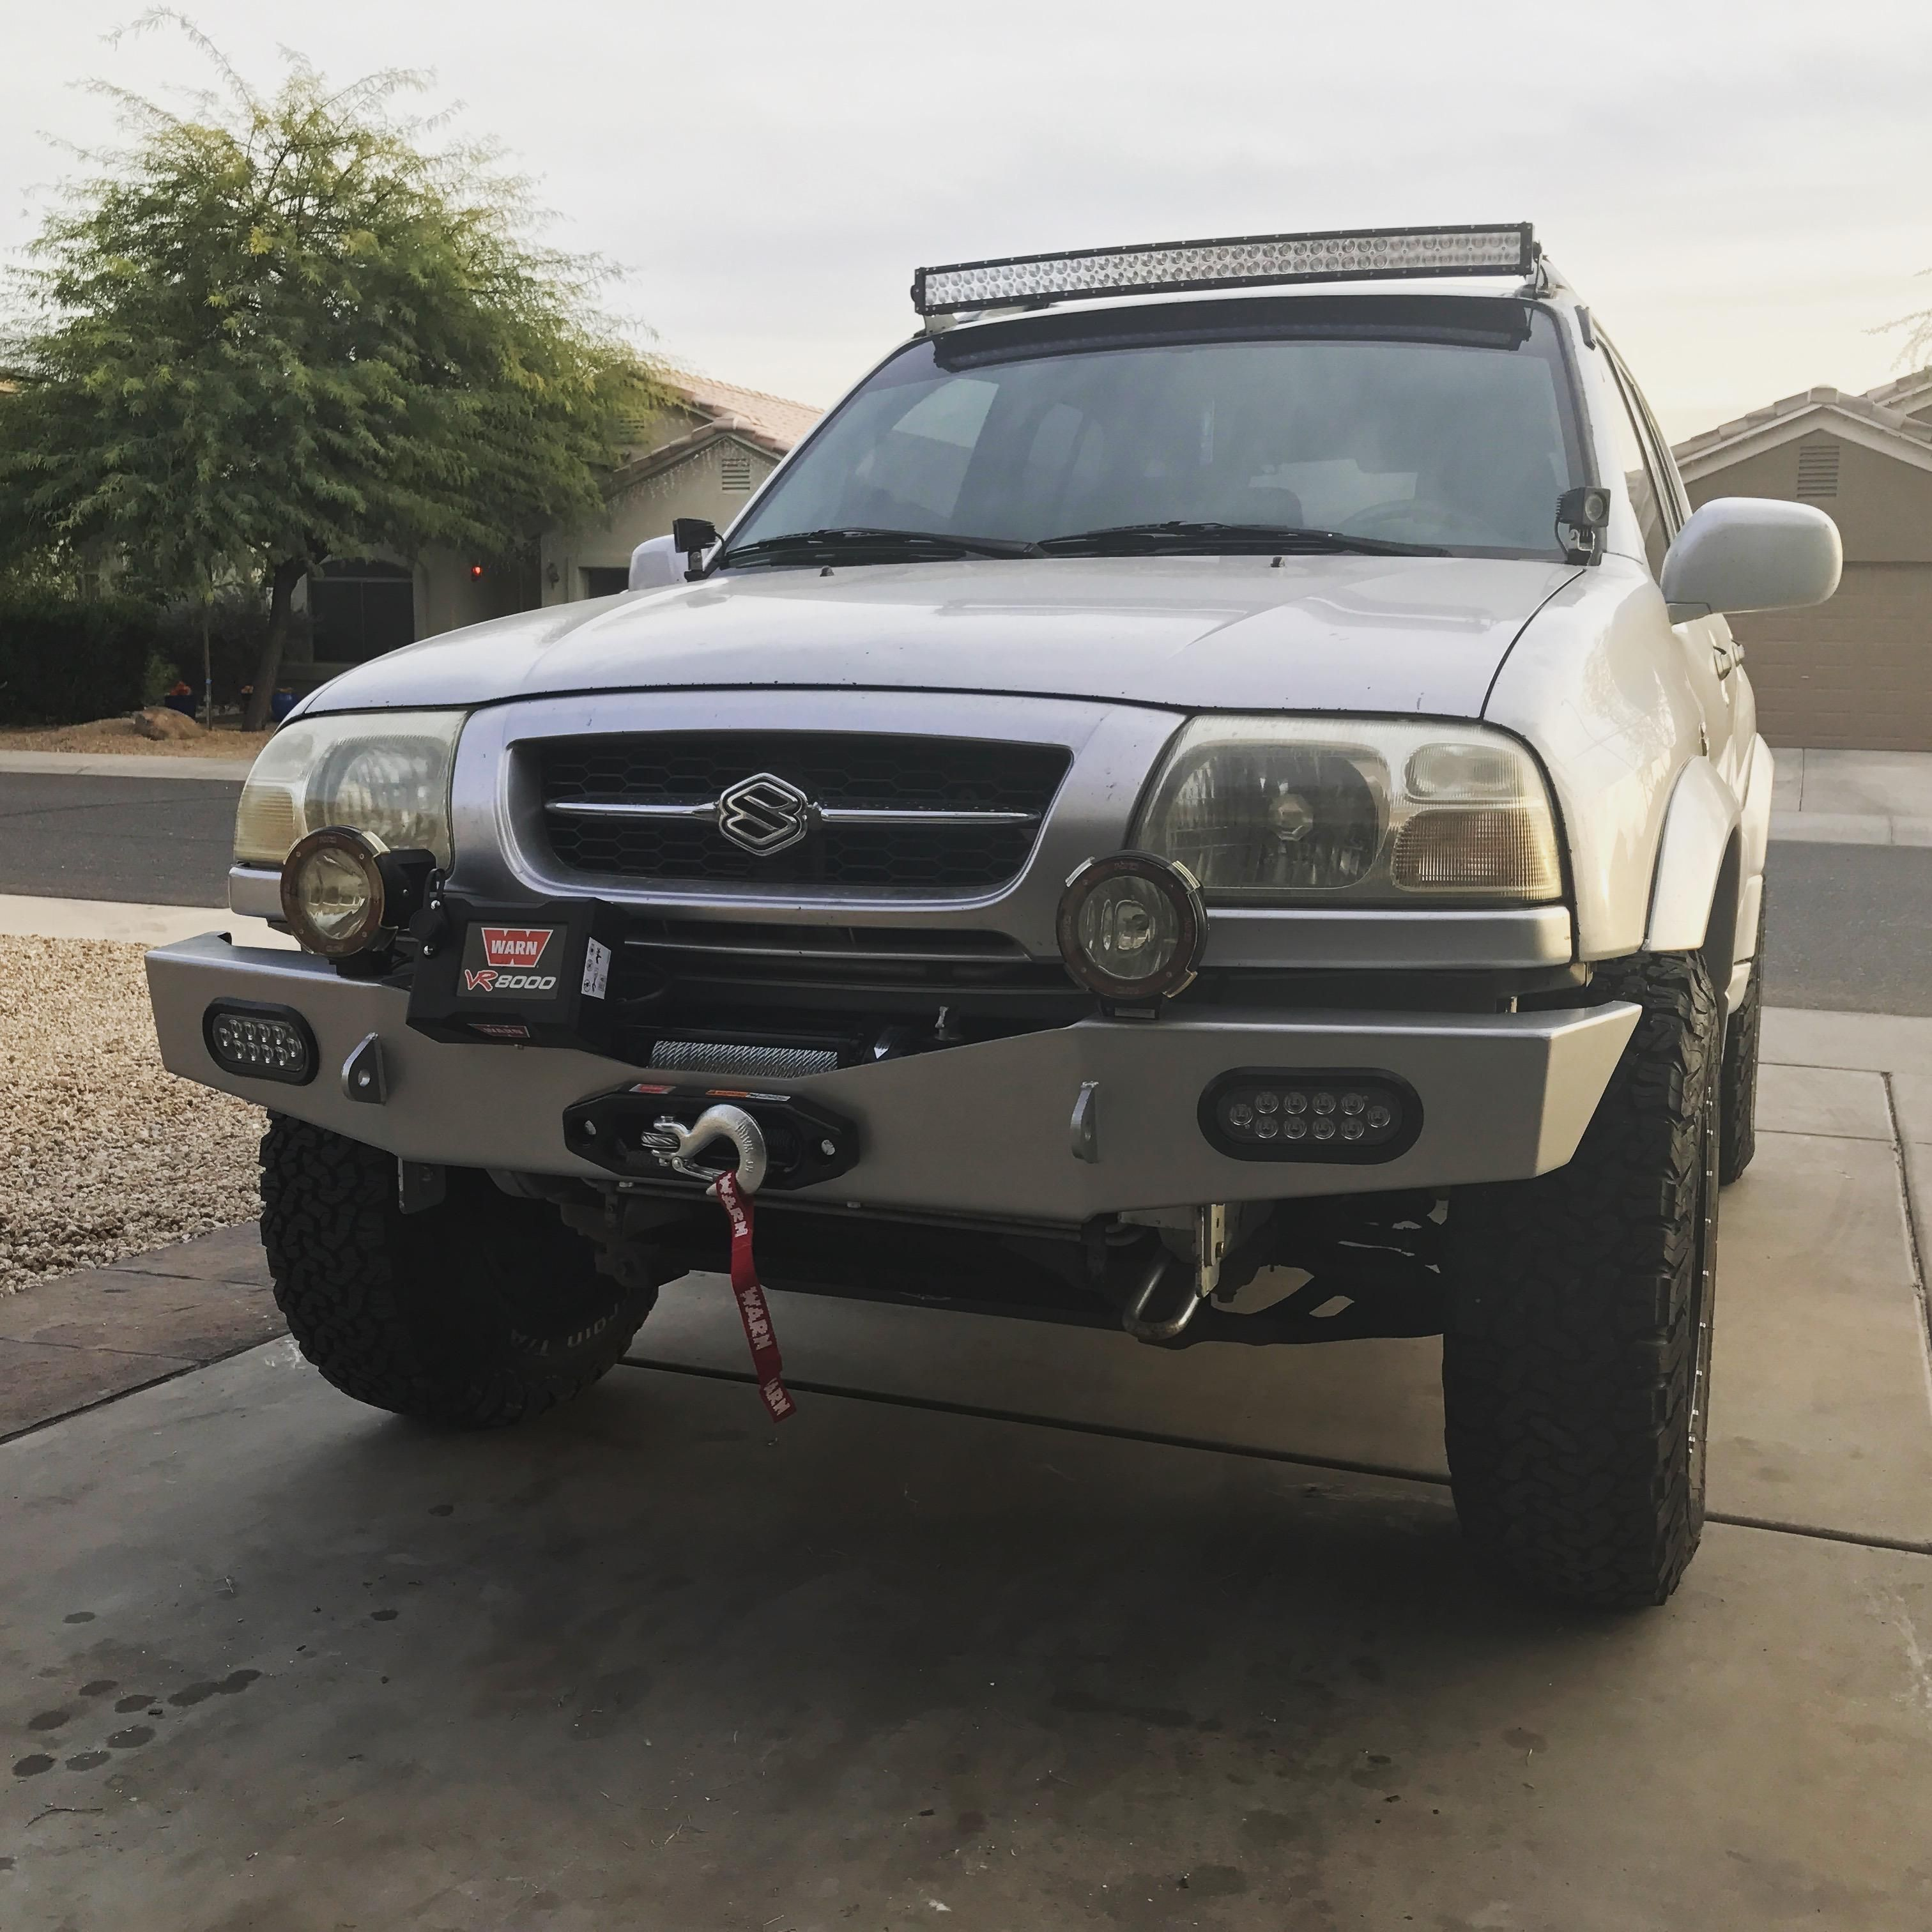 My Grand Vitara Looks A Little Better Now With The New Bumper 4x4 Offroad Grime Dubstep Grand Vitara Mercedes Benz Unimog 4x4